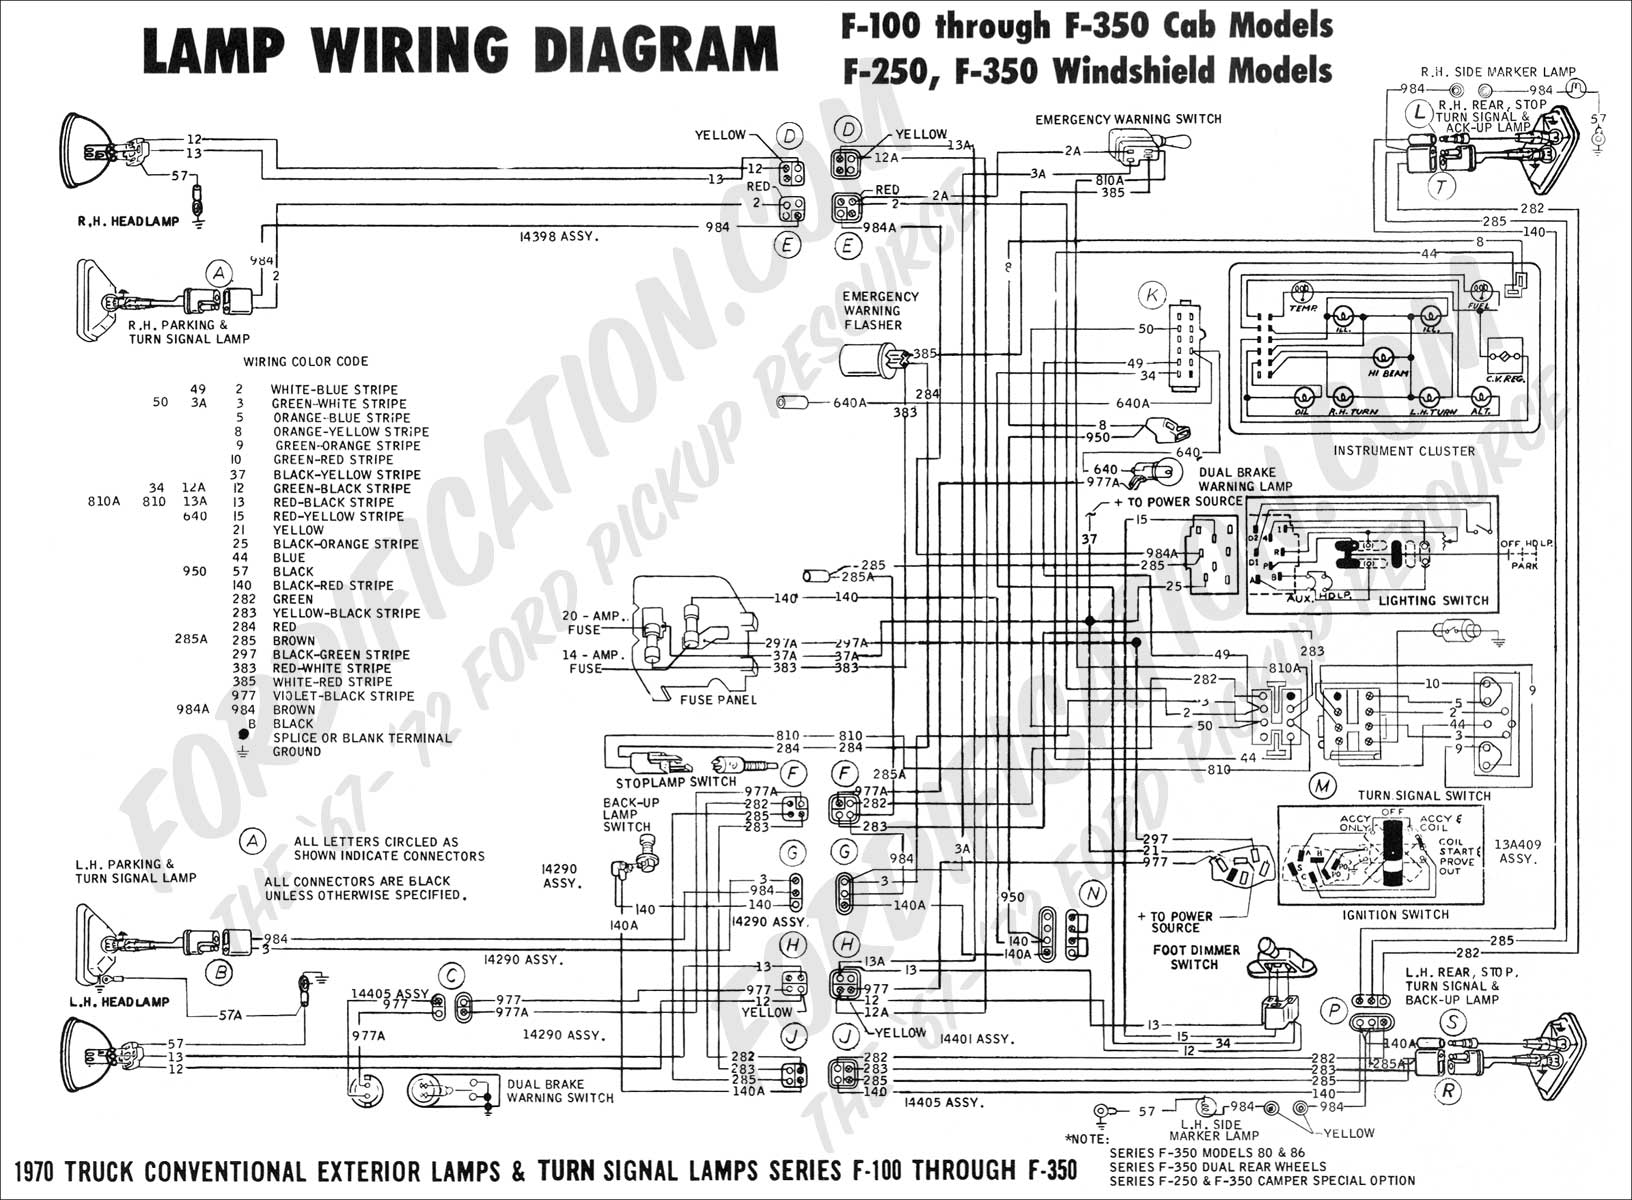 1968 ford f100 wiring diagram stereo manual e books rh 24 iq radiothek de